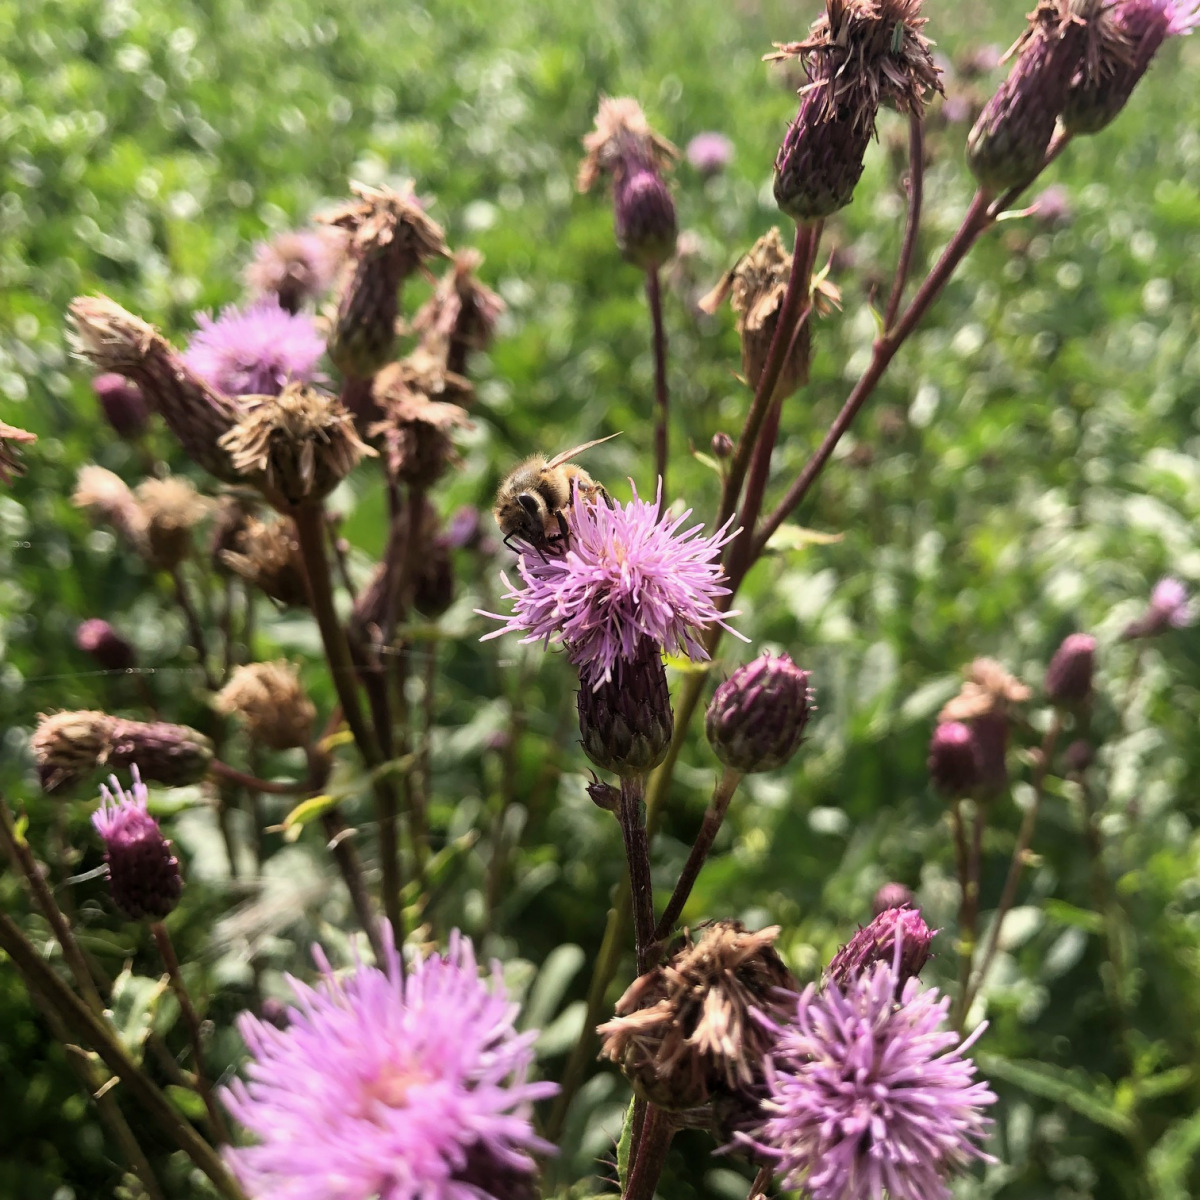 The advantage of organic farming in addition to being non-toxic is that there are weeds. Thistle is one of the few plants that produces  a good nectar flow  and pollen in late summer